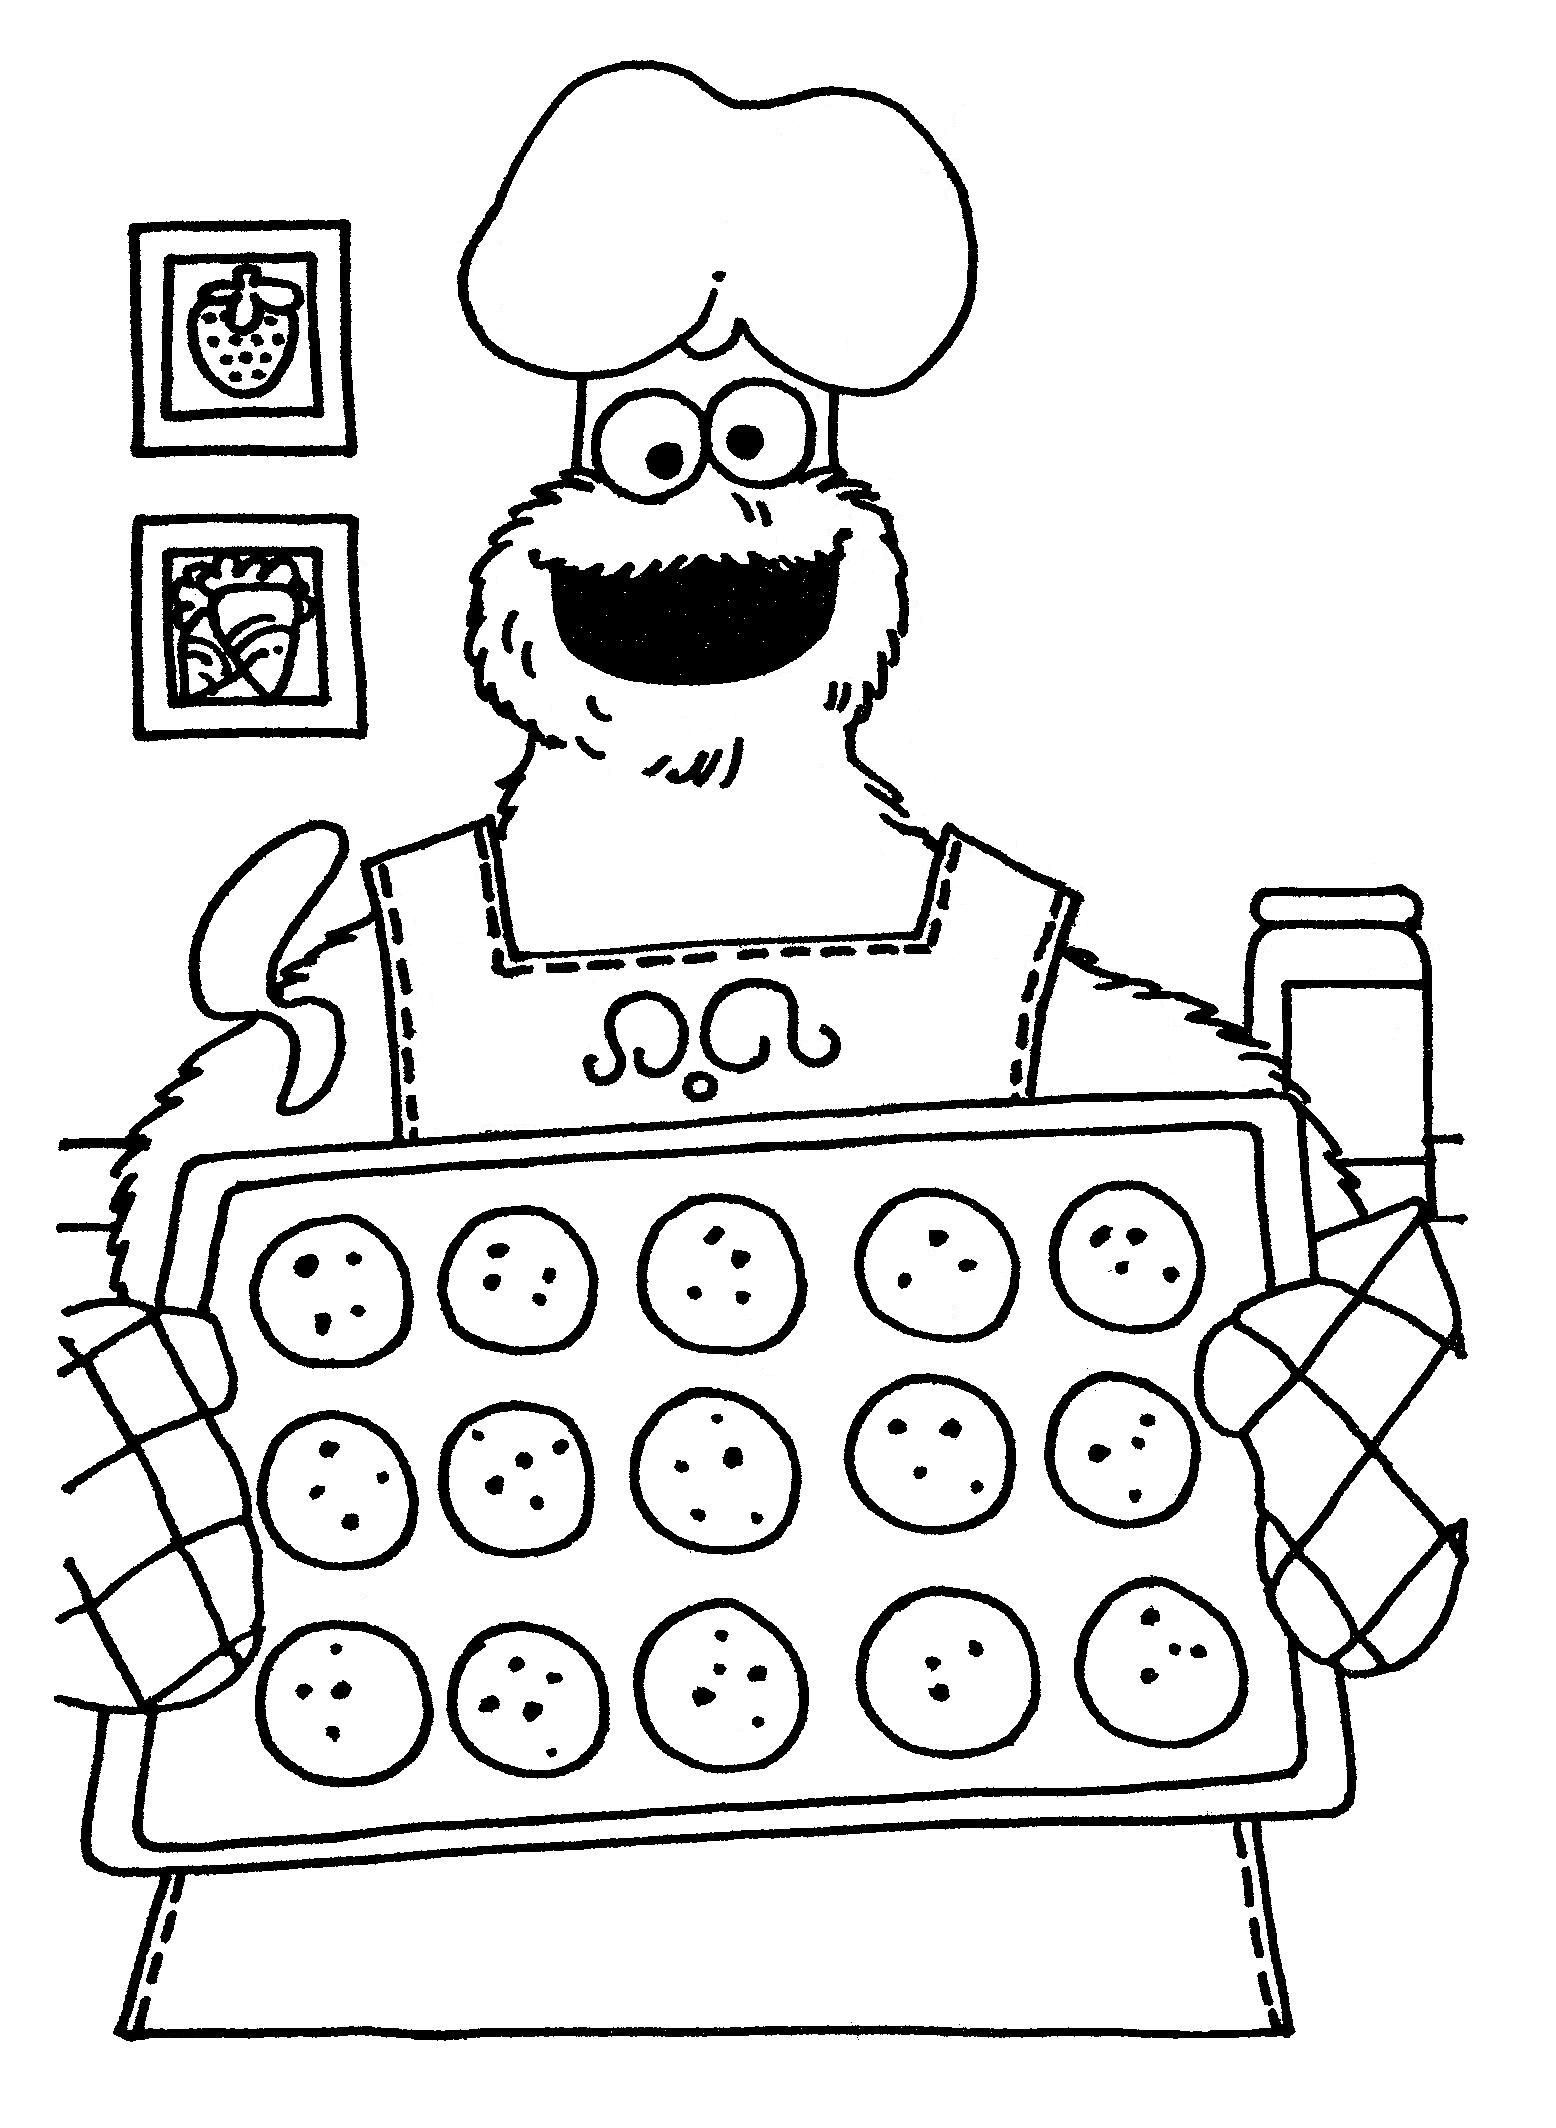 Baking Coloring Pages : baking, coloring, pages, Cookie, Monster, Baking, (Coloring, Pages), Anaokulu